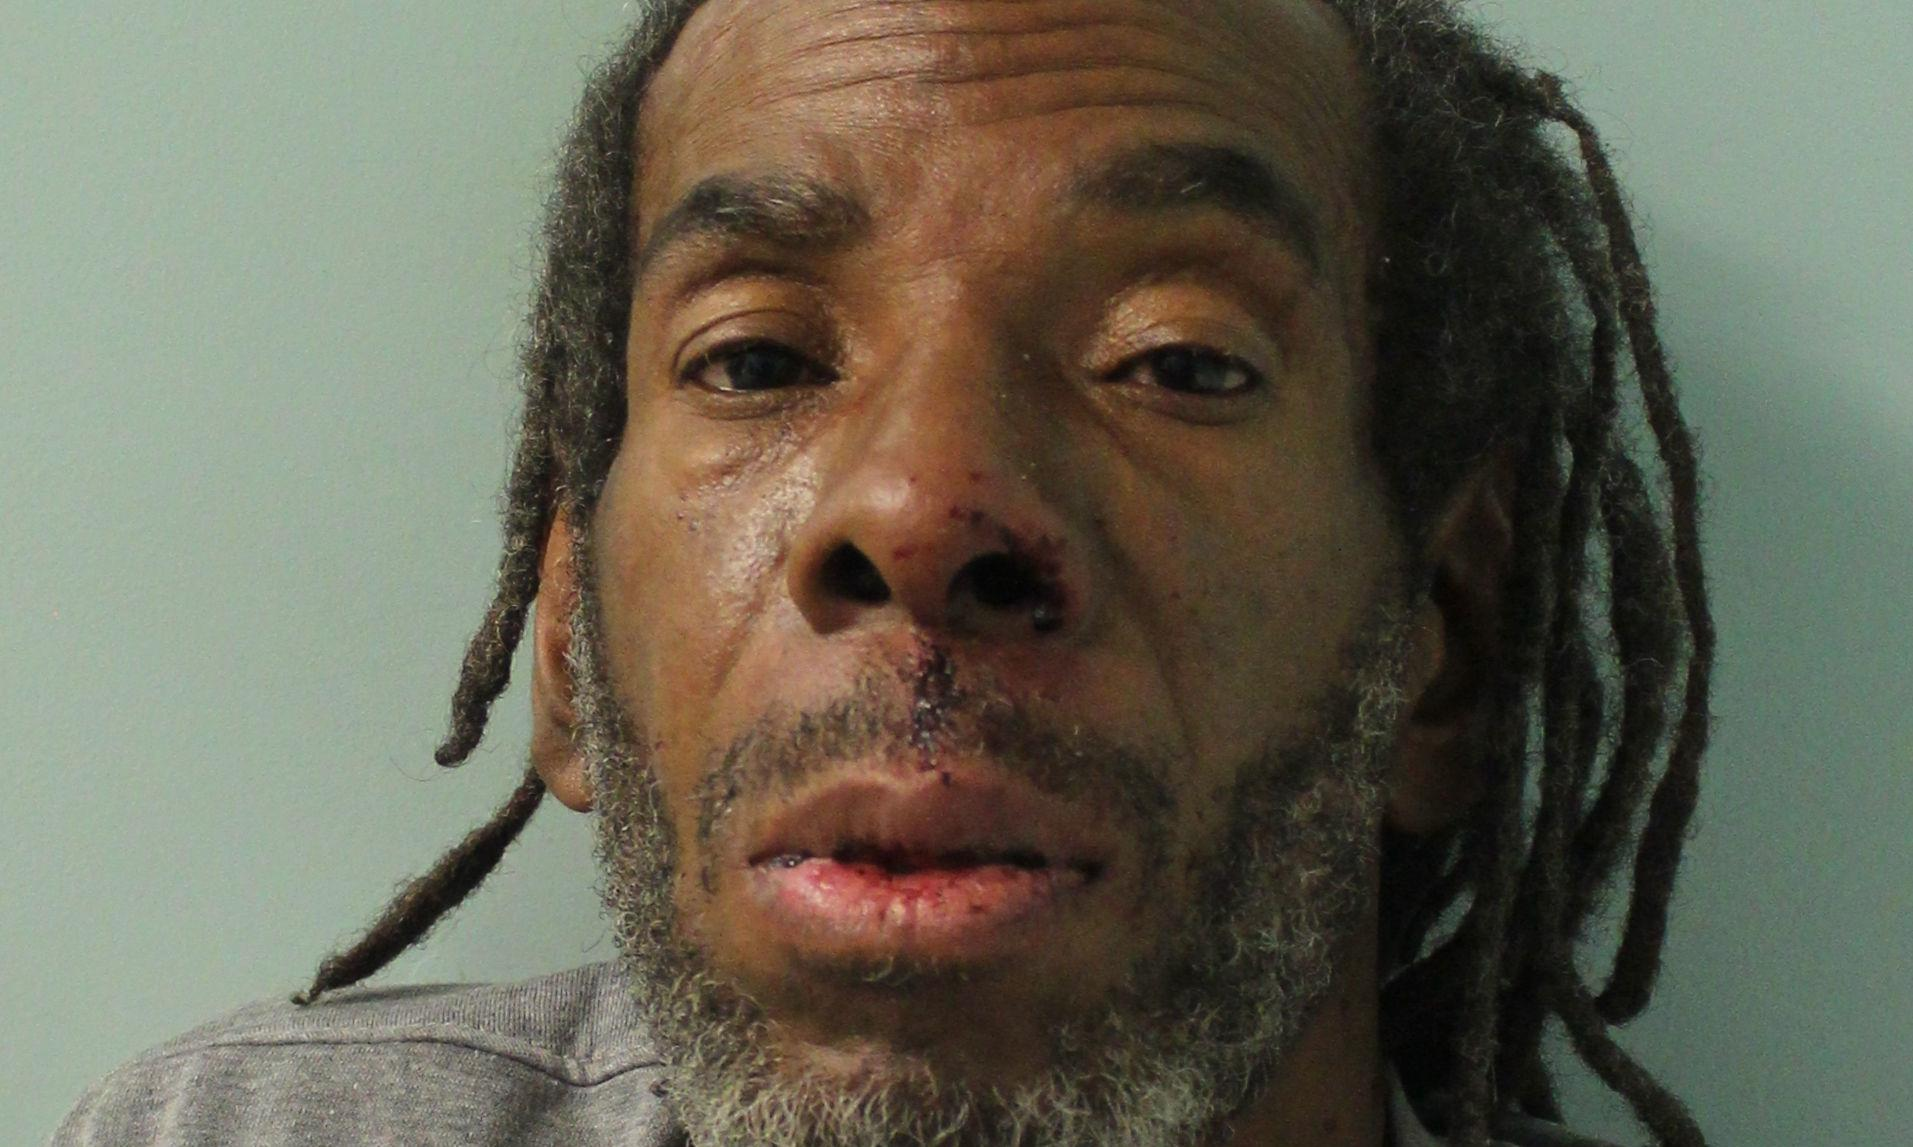 Man jailed for east London machete attack on police officer